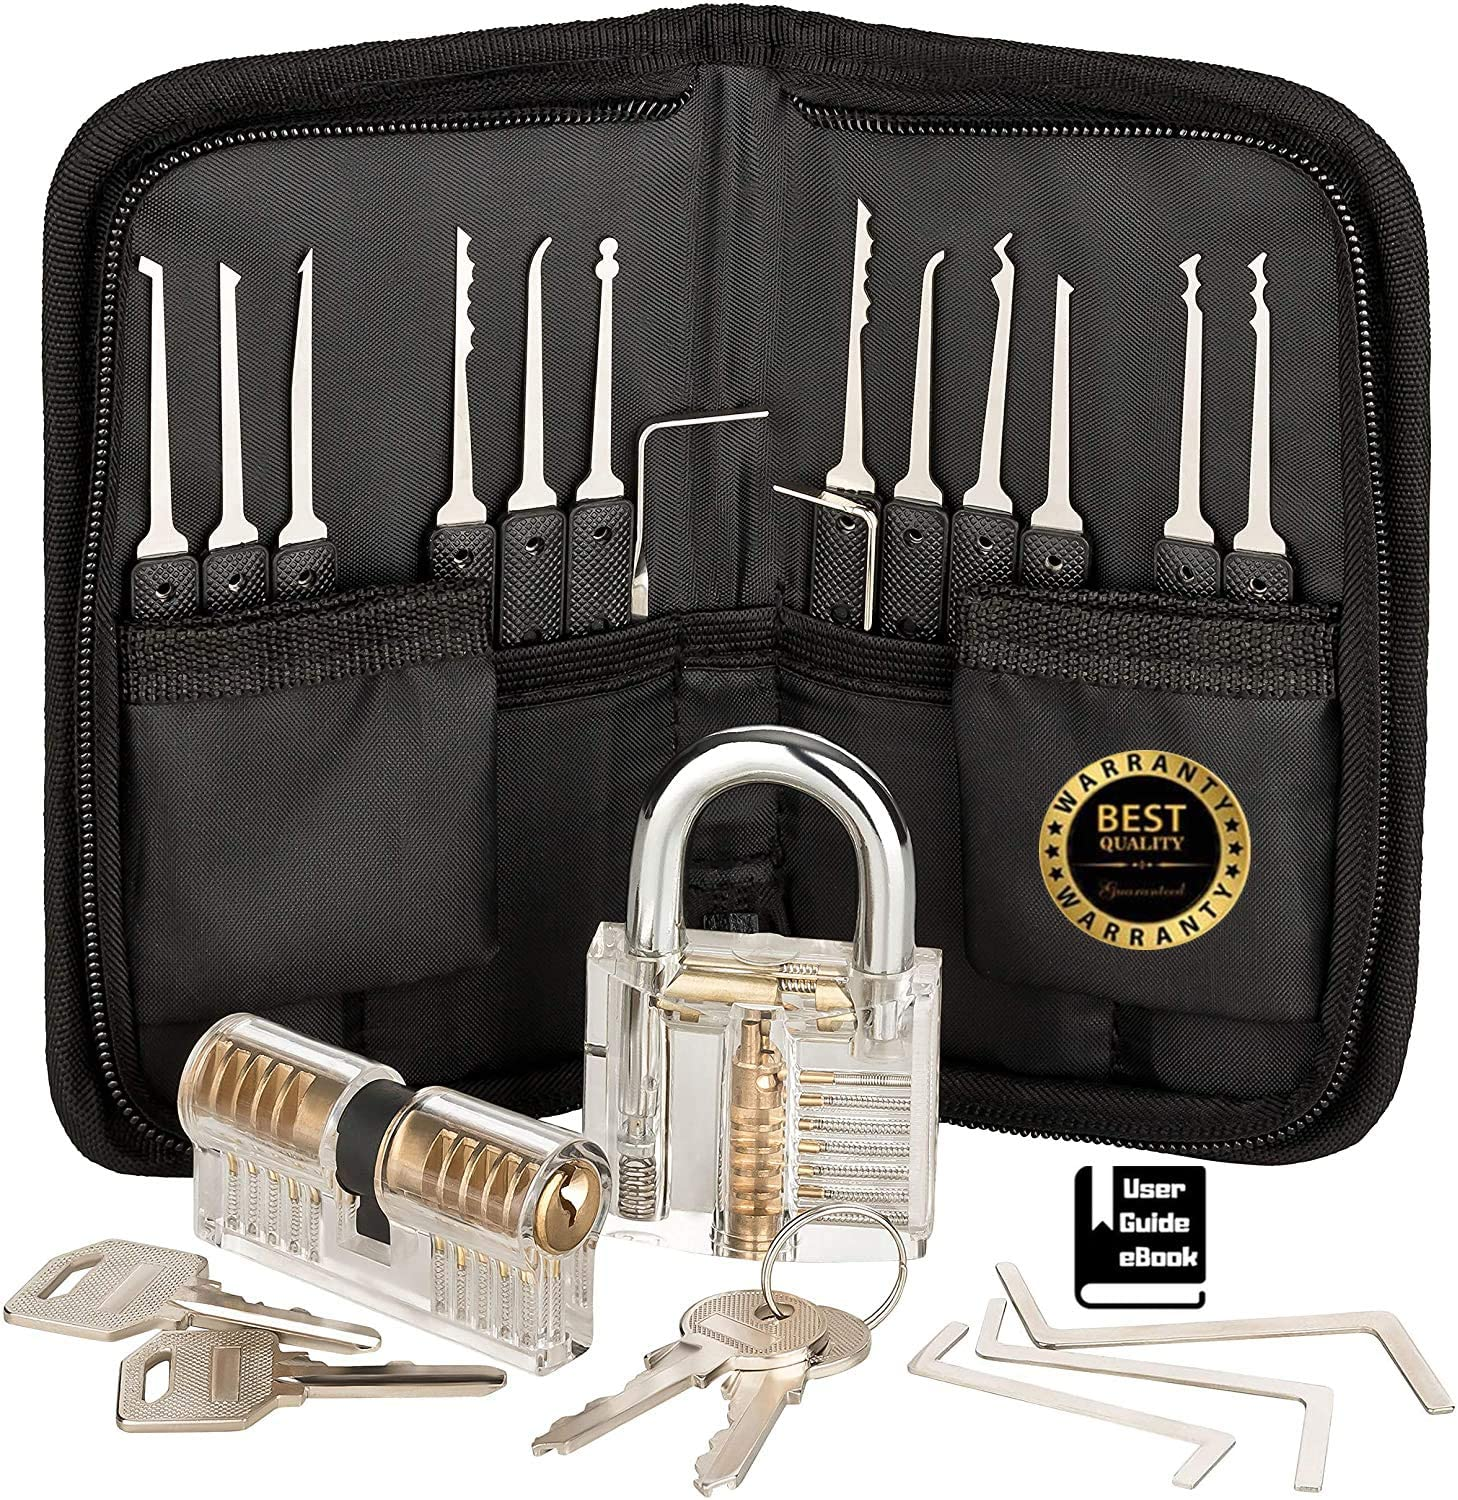 MZG-story Lock Stainless Steel multi-function with Set 17-Piece